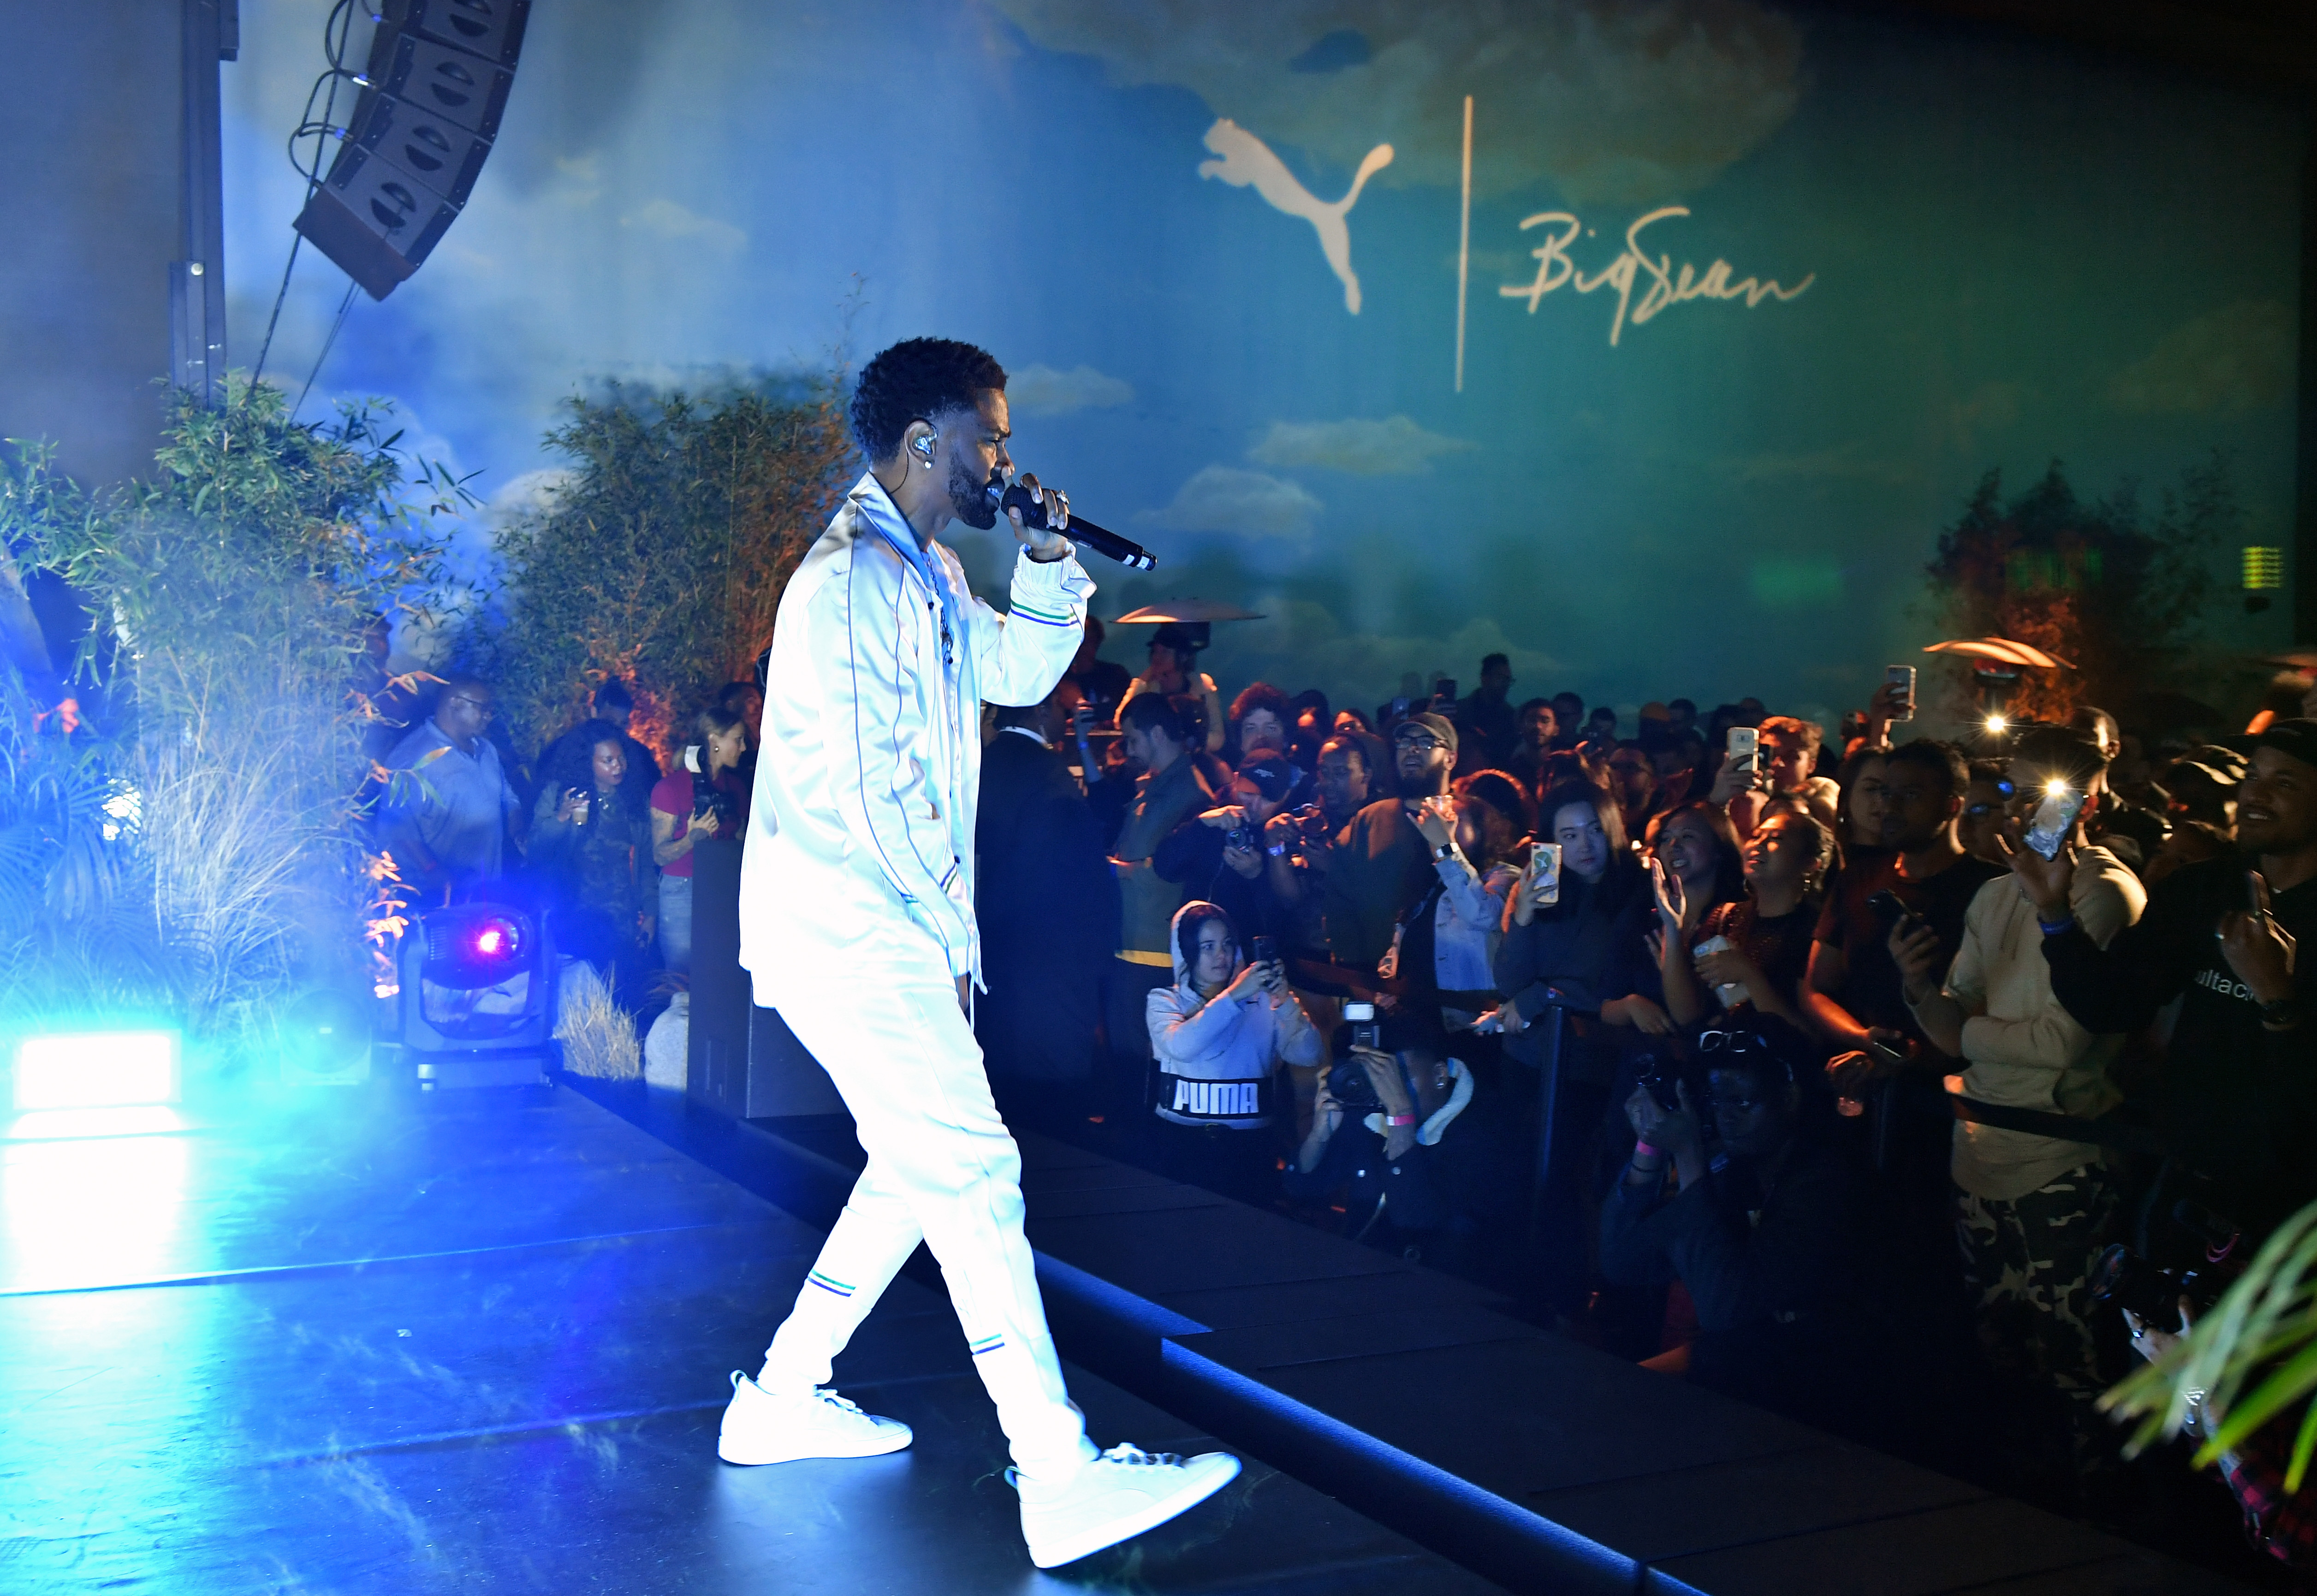 LOS ANGELES, CA - MARCH 19:  Big Sean performs onstage at PUMA x Big Sean Collection Launch Event at Goya Studios on March 19, 2018 in Los Angeles, California.  (Photo by Neilson Barnard/Getty Images for PUMA)